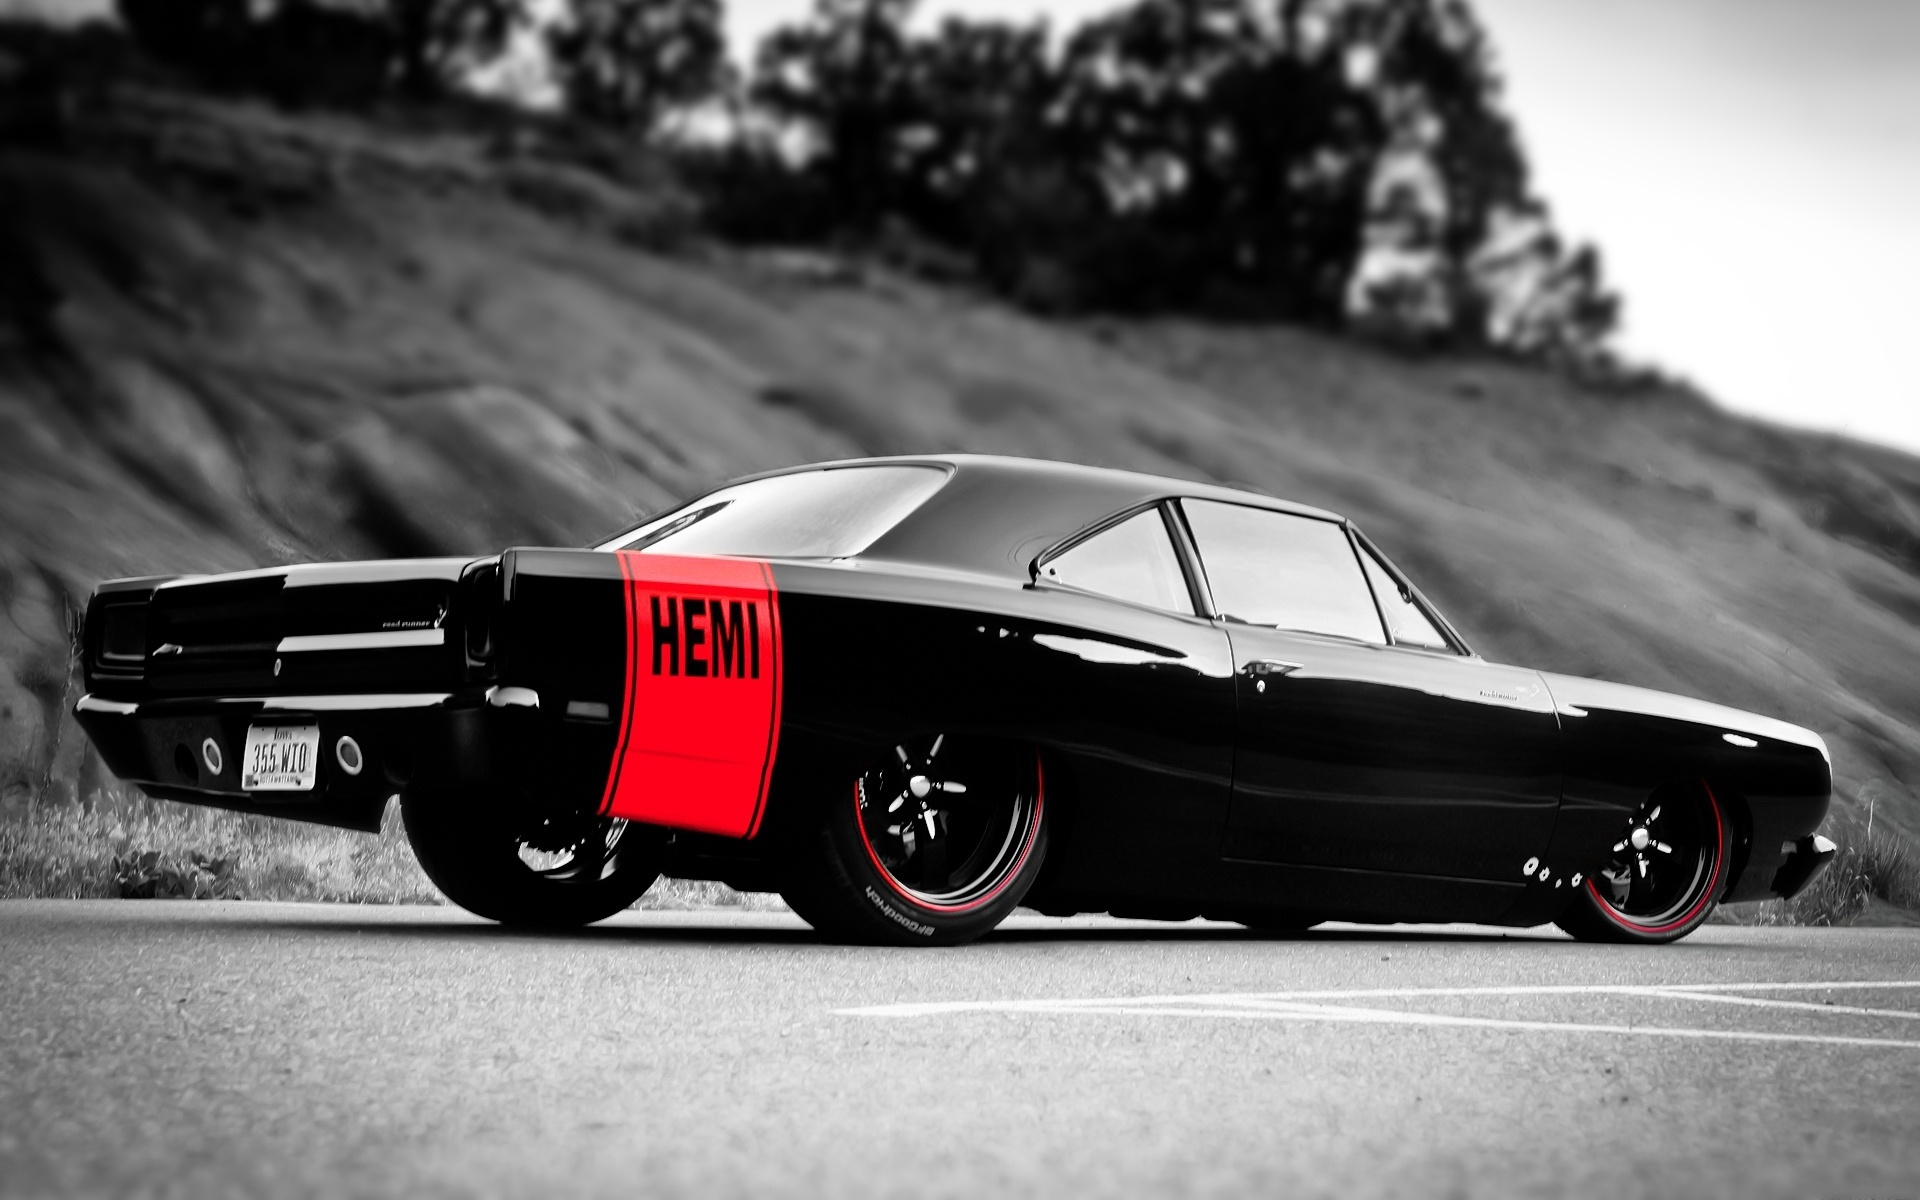 Description: The Wallpaper above is Muscle Car Hemi Wallpaper in Resolution 1920x1200. Choose your Resolution and Download Muscle Car Hemi Wallpaper